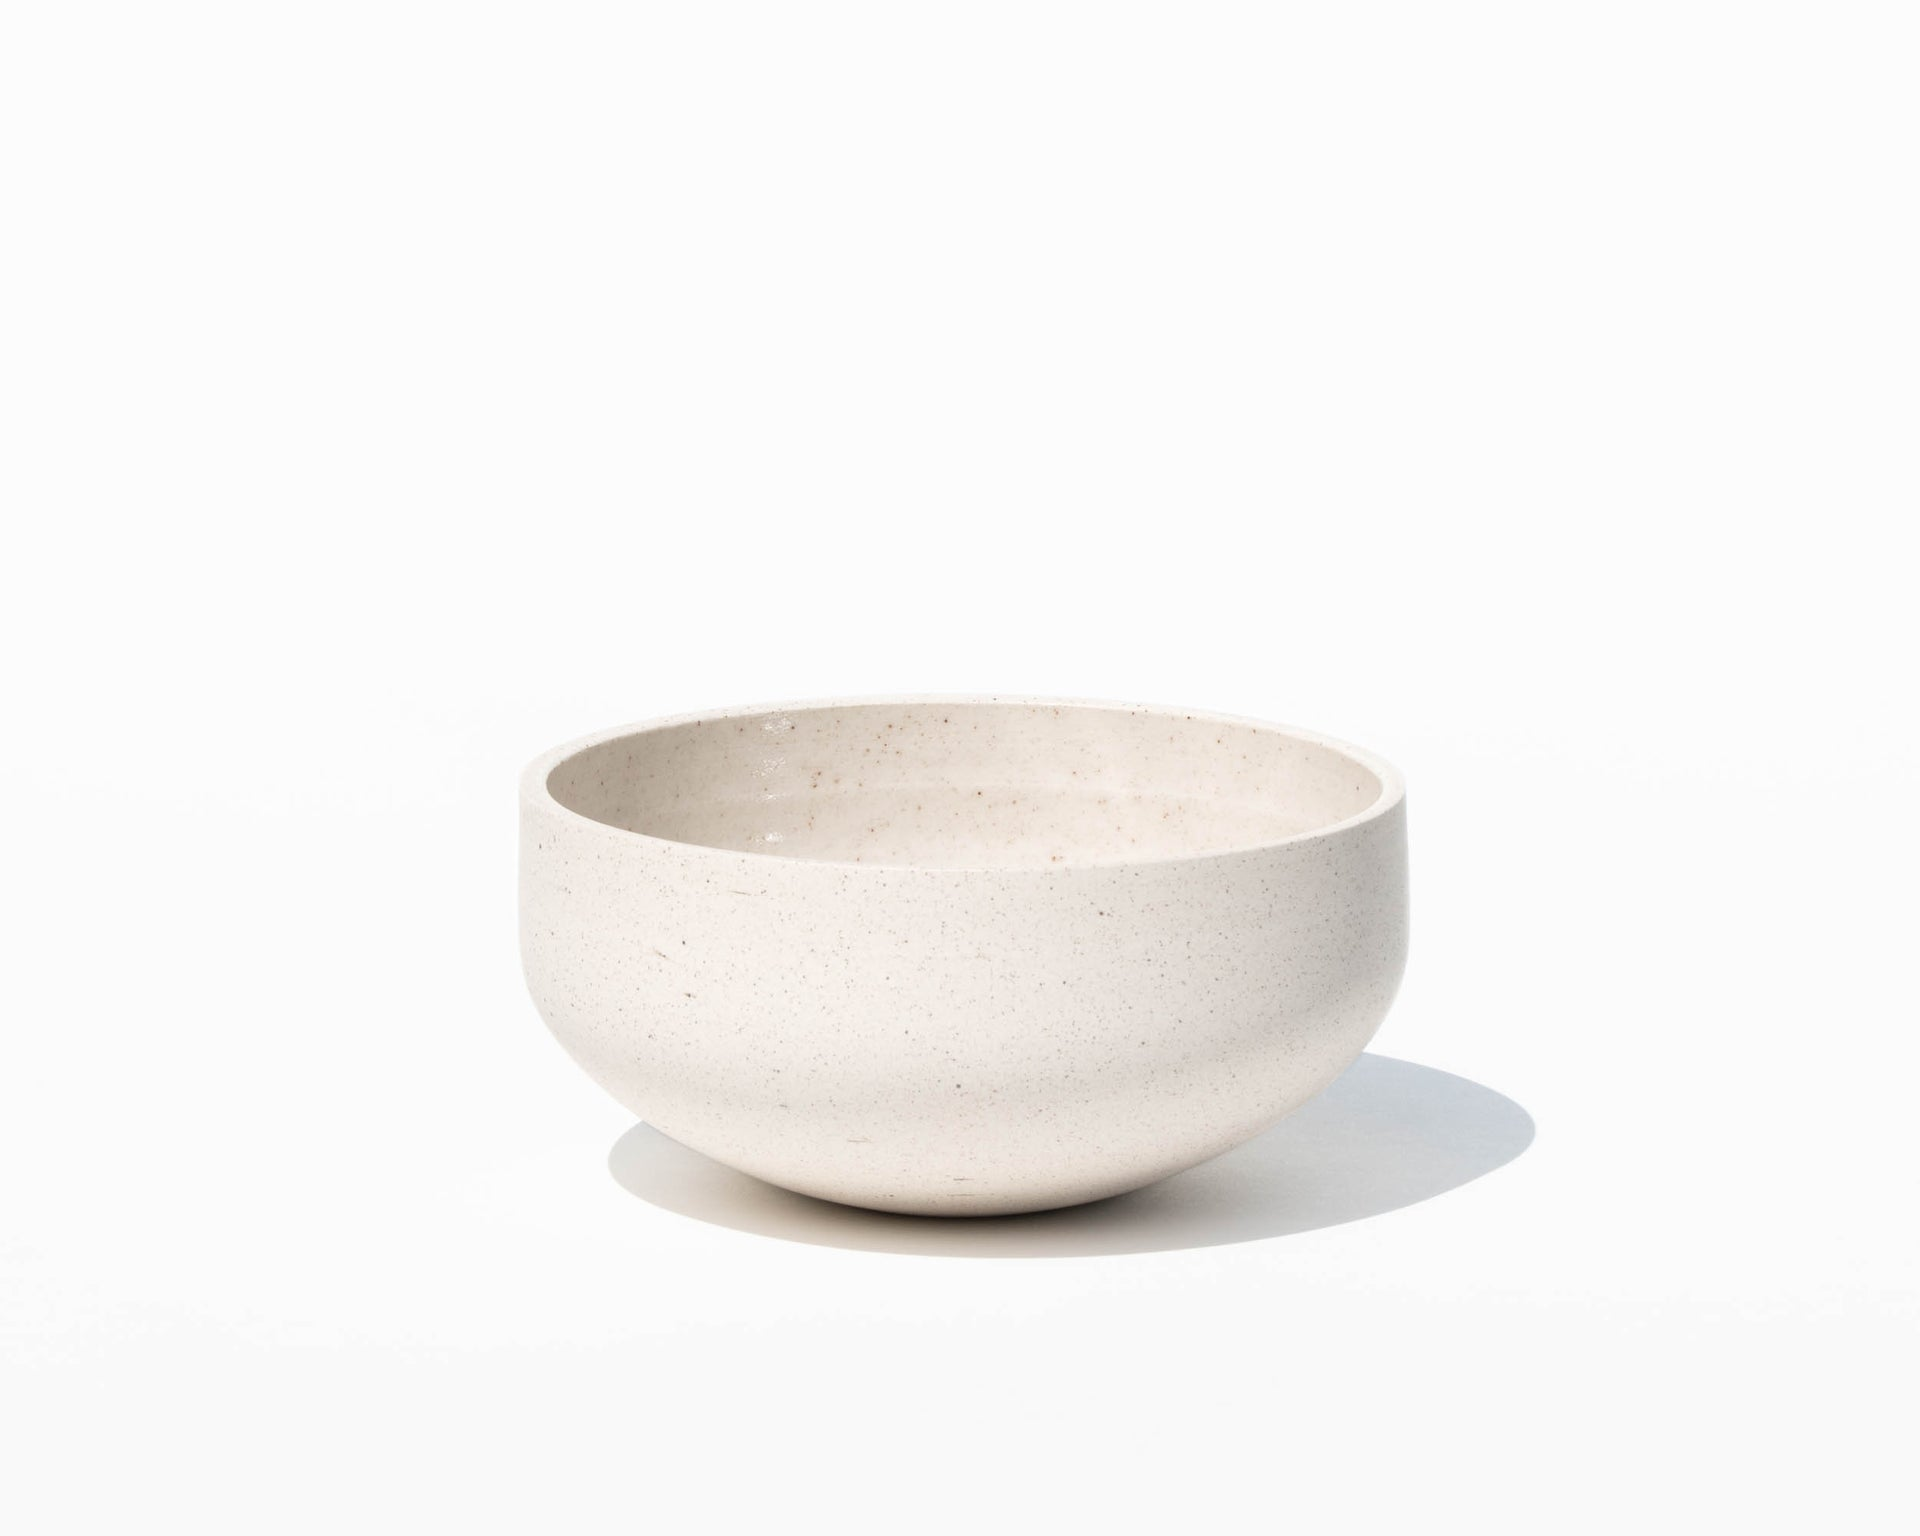 Speckled Bowl - Oat